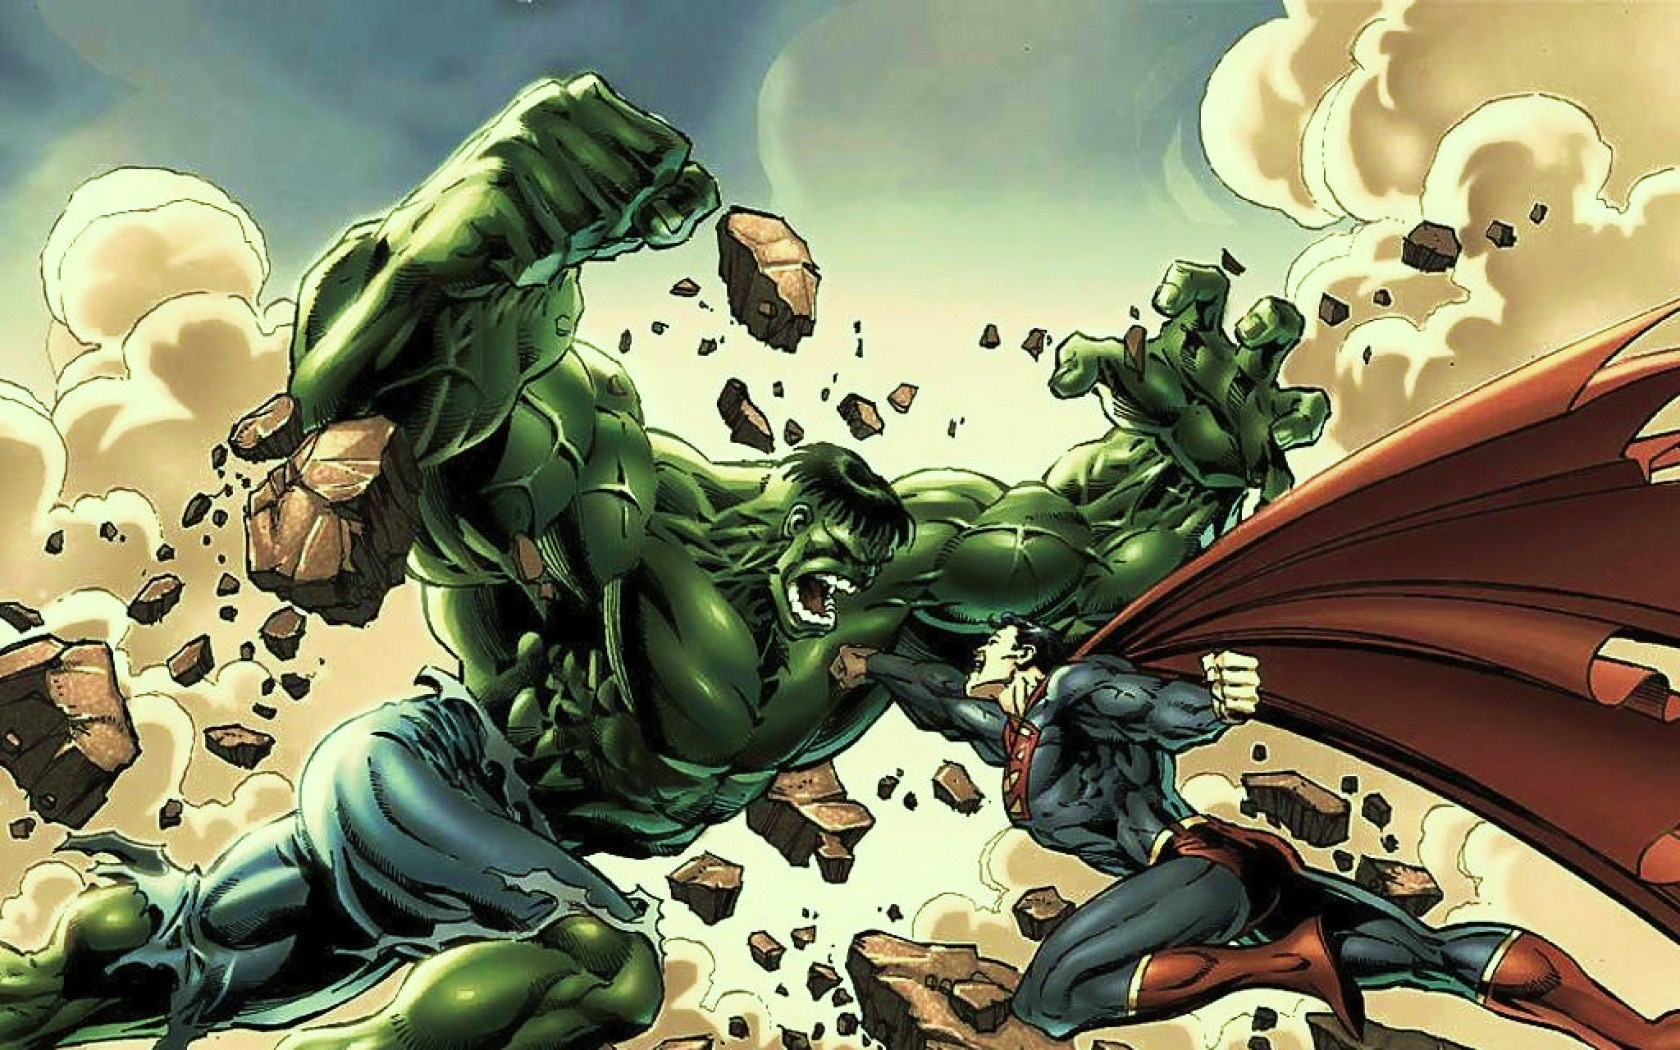 Neither one of them can really die either. The Hulk's regeneration speed is so fast it's almost impossible to actually finish him once and for all.